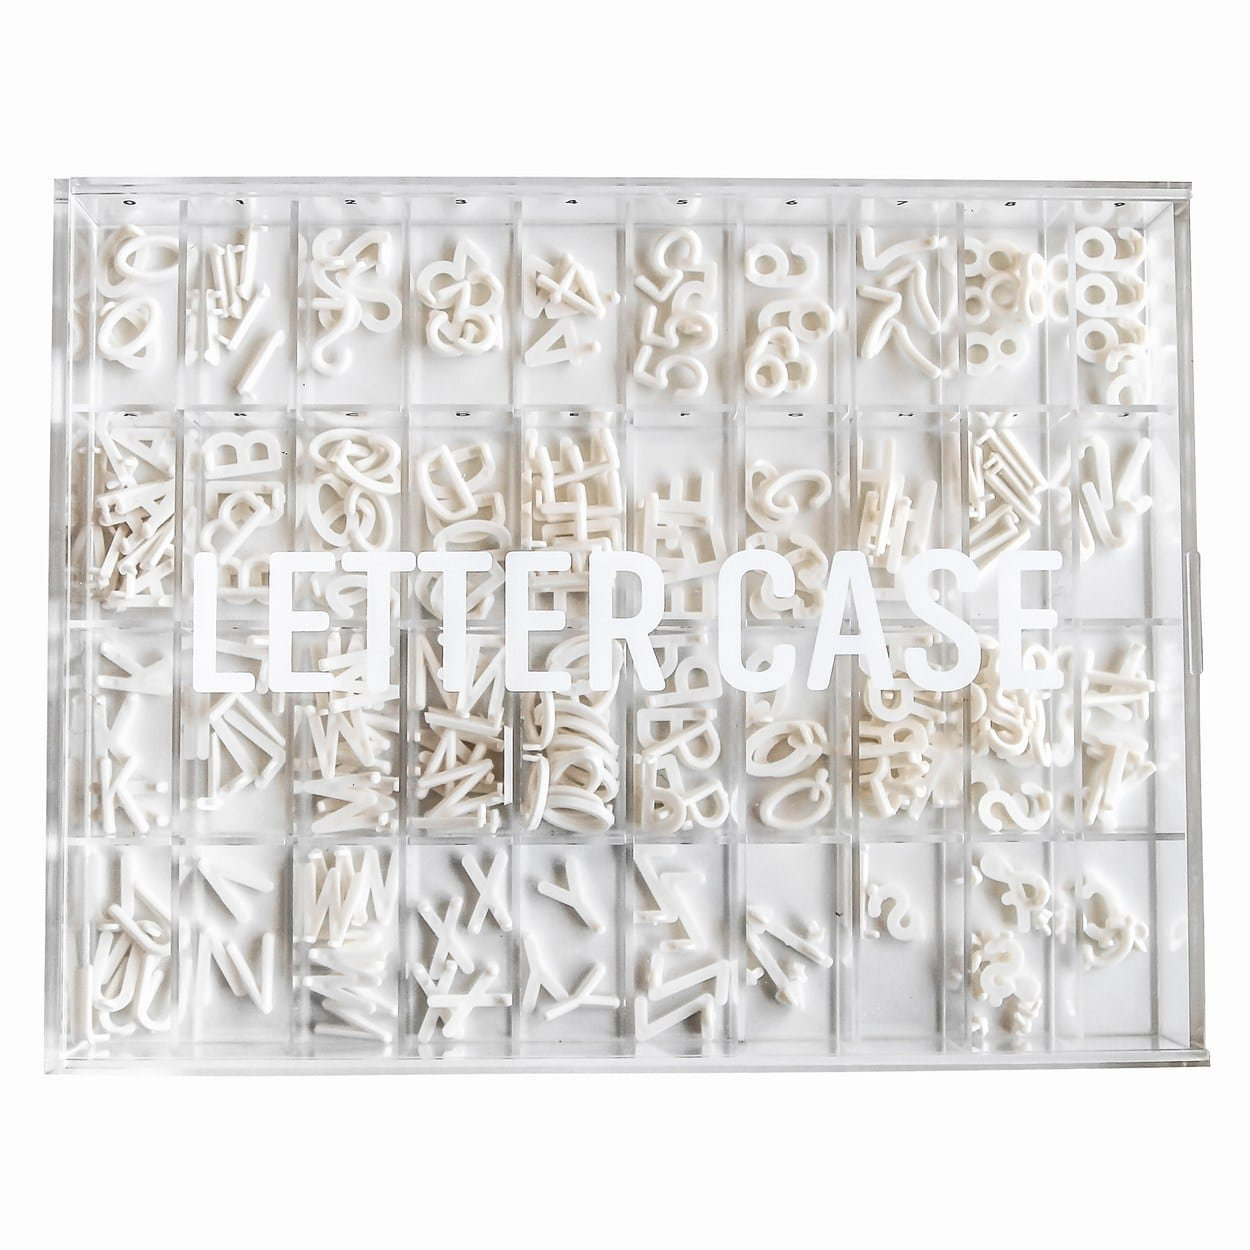 Letter Board Case to Organize & Store Your Letters by Letter Case with 40 Individual Grids for Every Number, Letter and Special Character